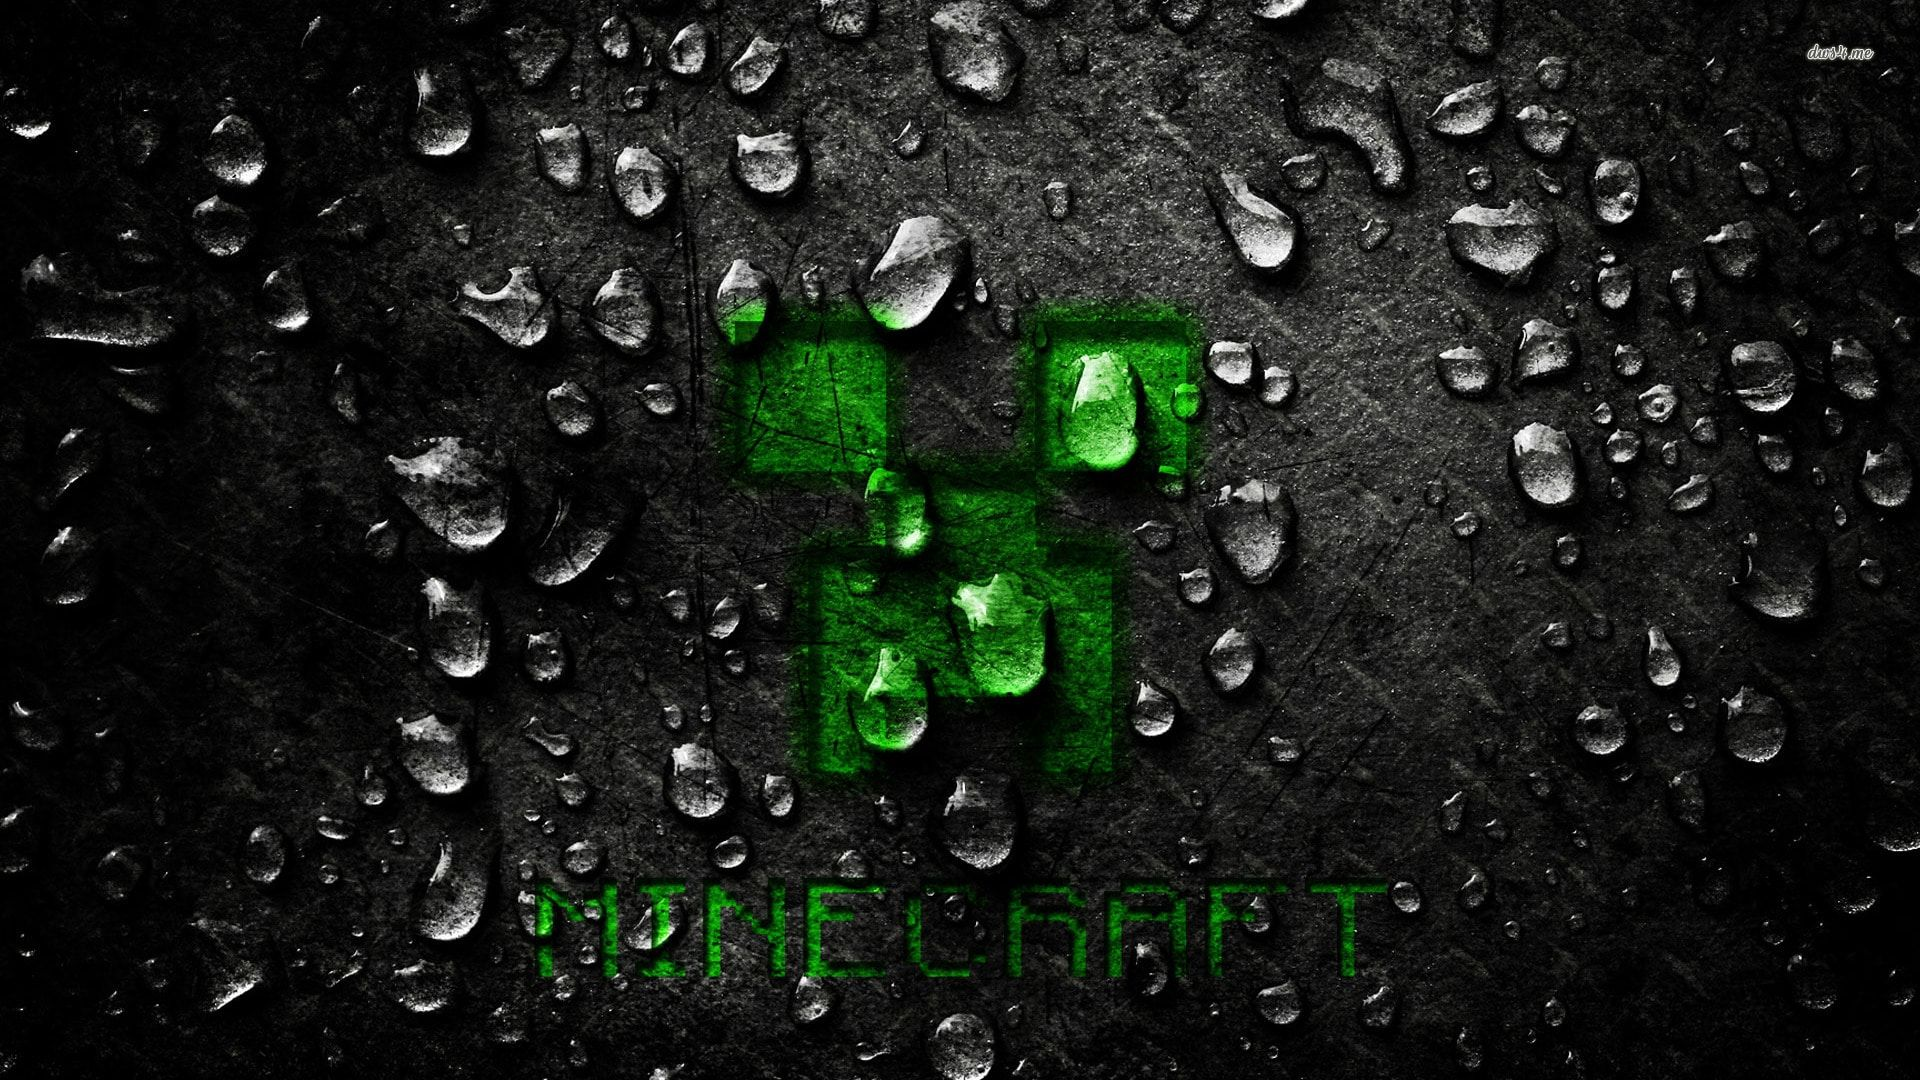 Minecraft creeper wallpapers wide is cool wallpapers pls minecraft creeper wallpapers wide is cool wallpapers voltagebd Choice Image